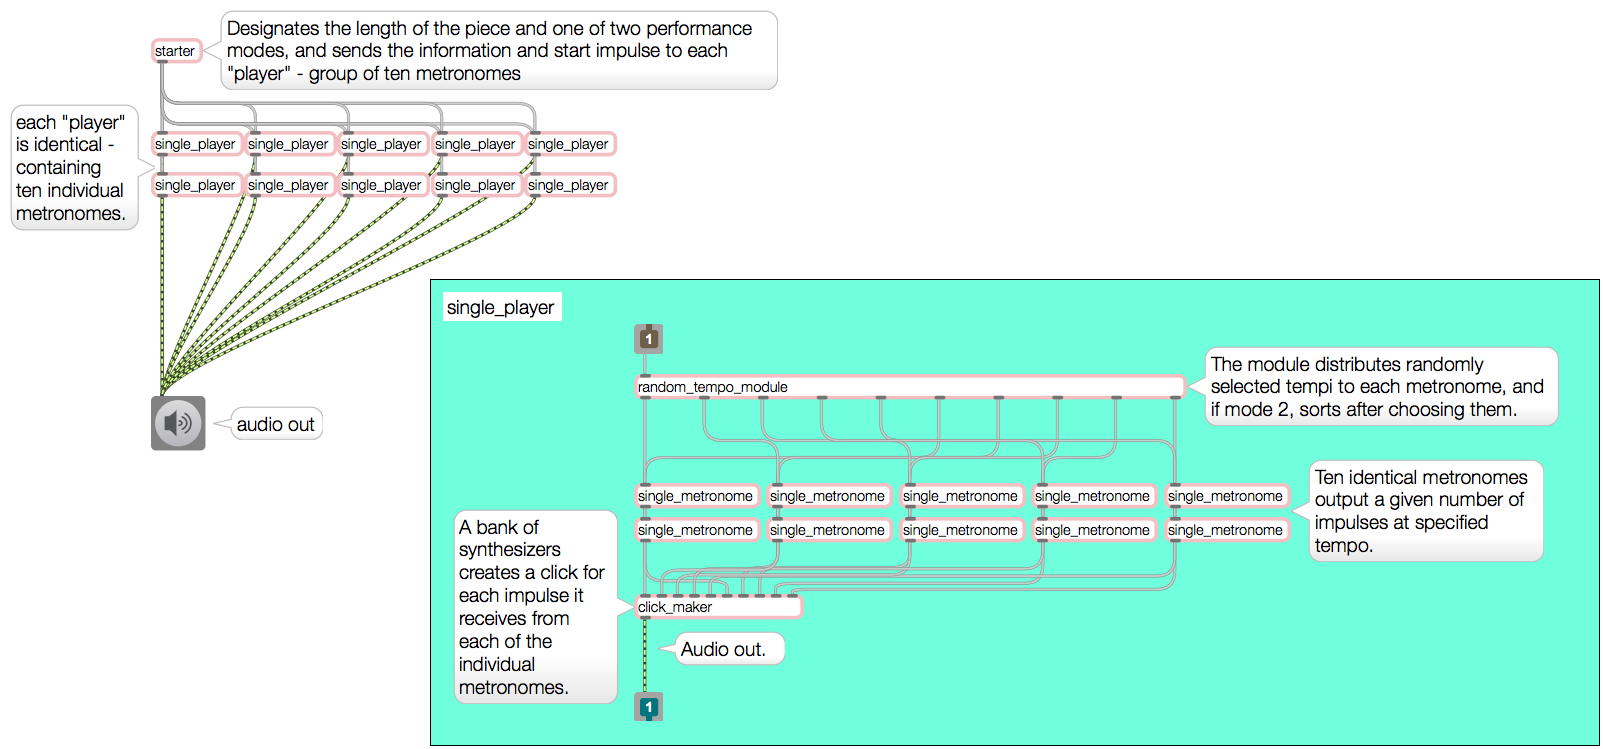 """The """"starter"""" module, analogous to the conductor, designates the length of the piece and one of the two performance modes. sending information to each of the players and their metronomes. The player modules then select a tempo for each metronome in the group and distributes them to the instruments depending on the performance mode selected. Each impulse of a metronome in tempo is sent to a synthesizer, which creates an audible """"clack."""""""